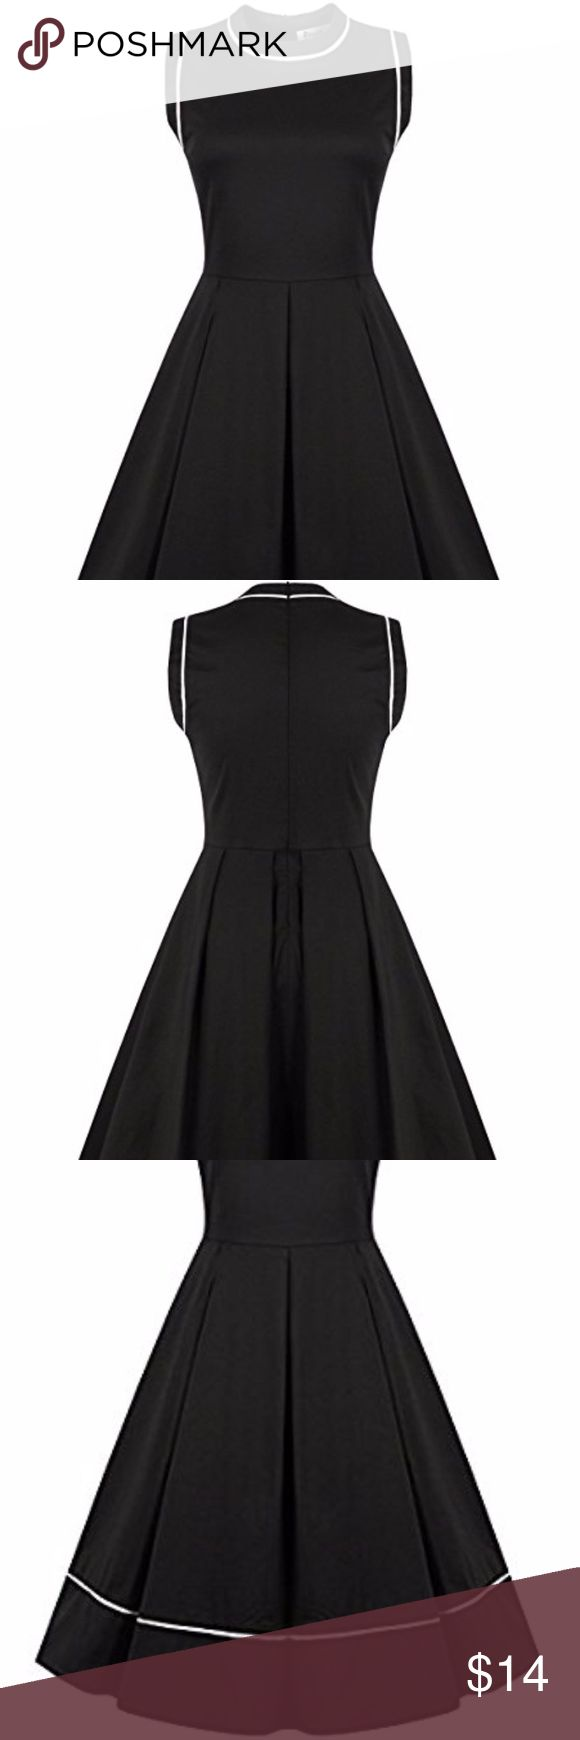 Women's 50s 60s Style Elegant A-Line dress Gorgeous short sleeveless A-line shaped party dress with round neck and white line Slightly worn, like new Cotton, Spandex Back zipper closure Machine wash cold Casual yet suitable for every special occasion and event, perfect for spring, summer, great for cocktail party ReoRia Dresses